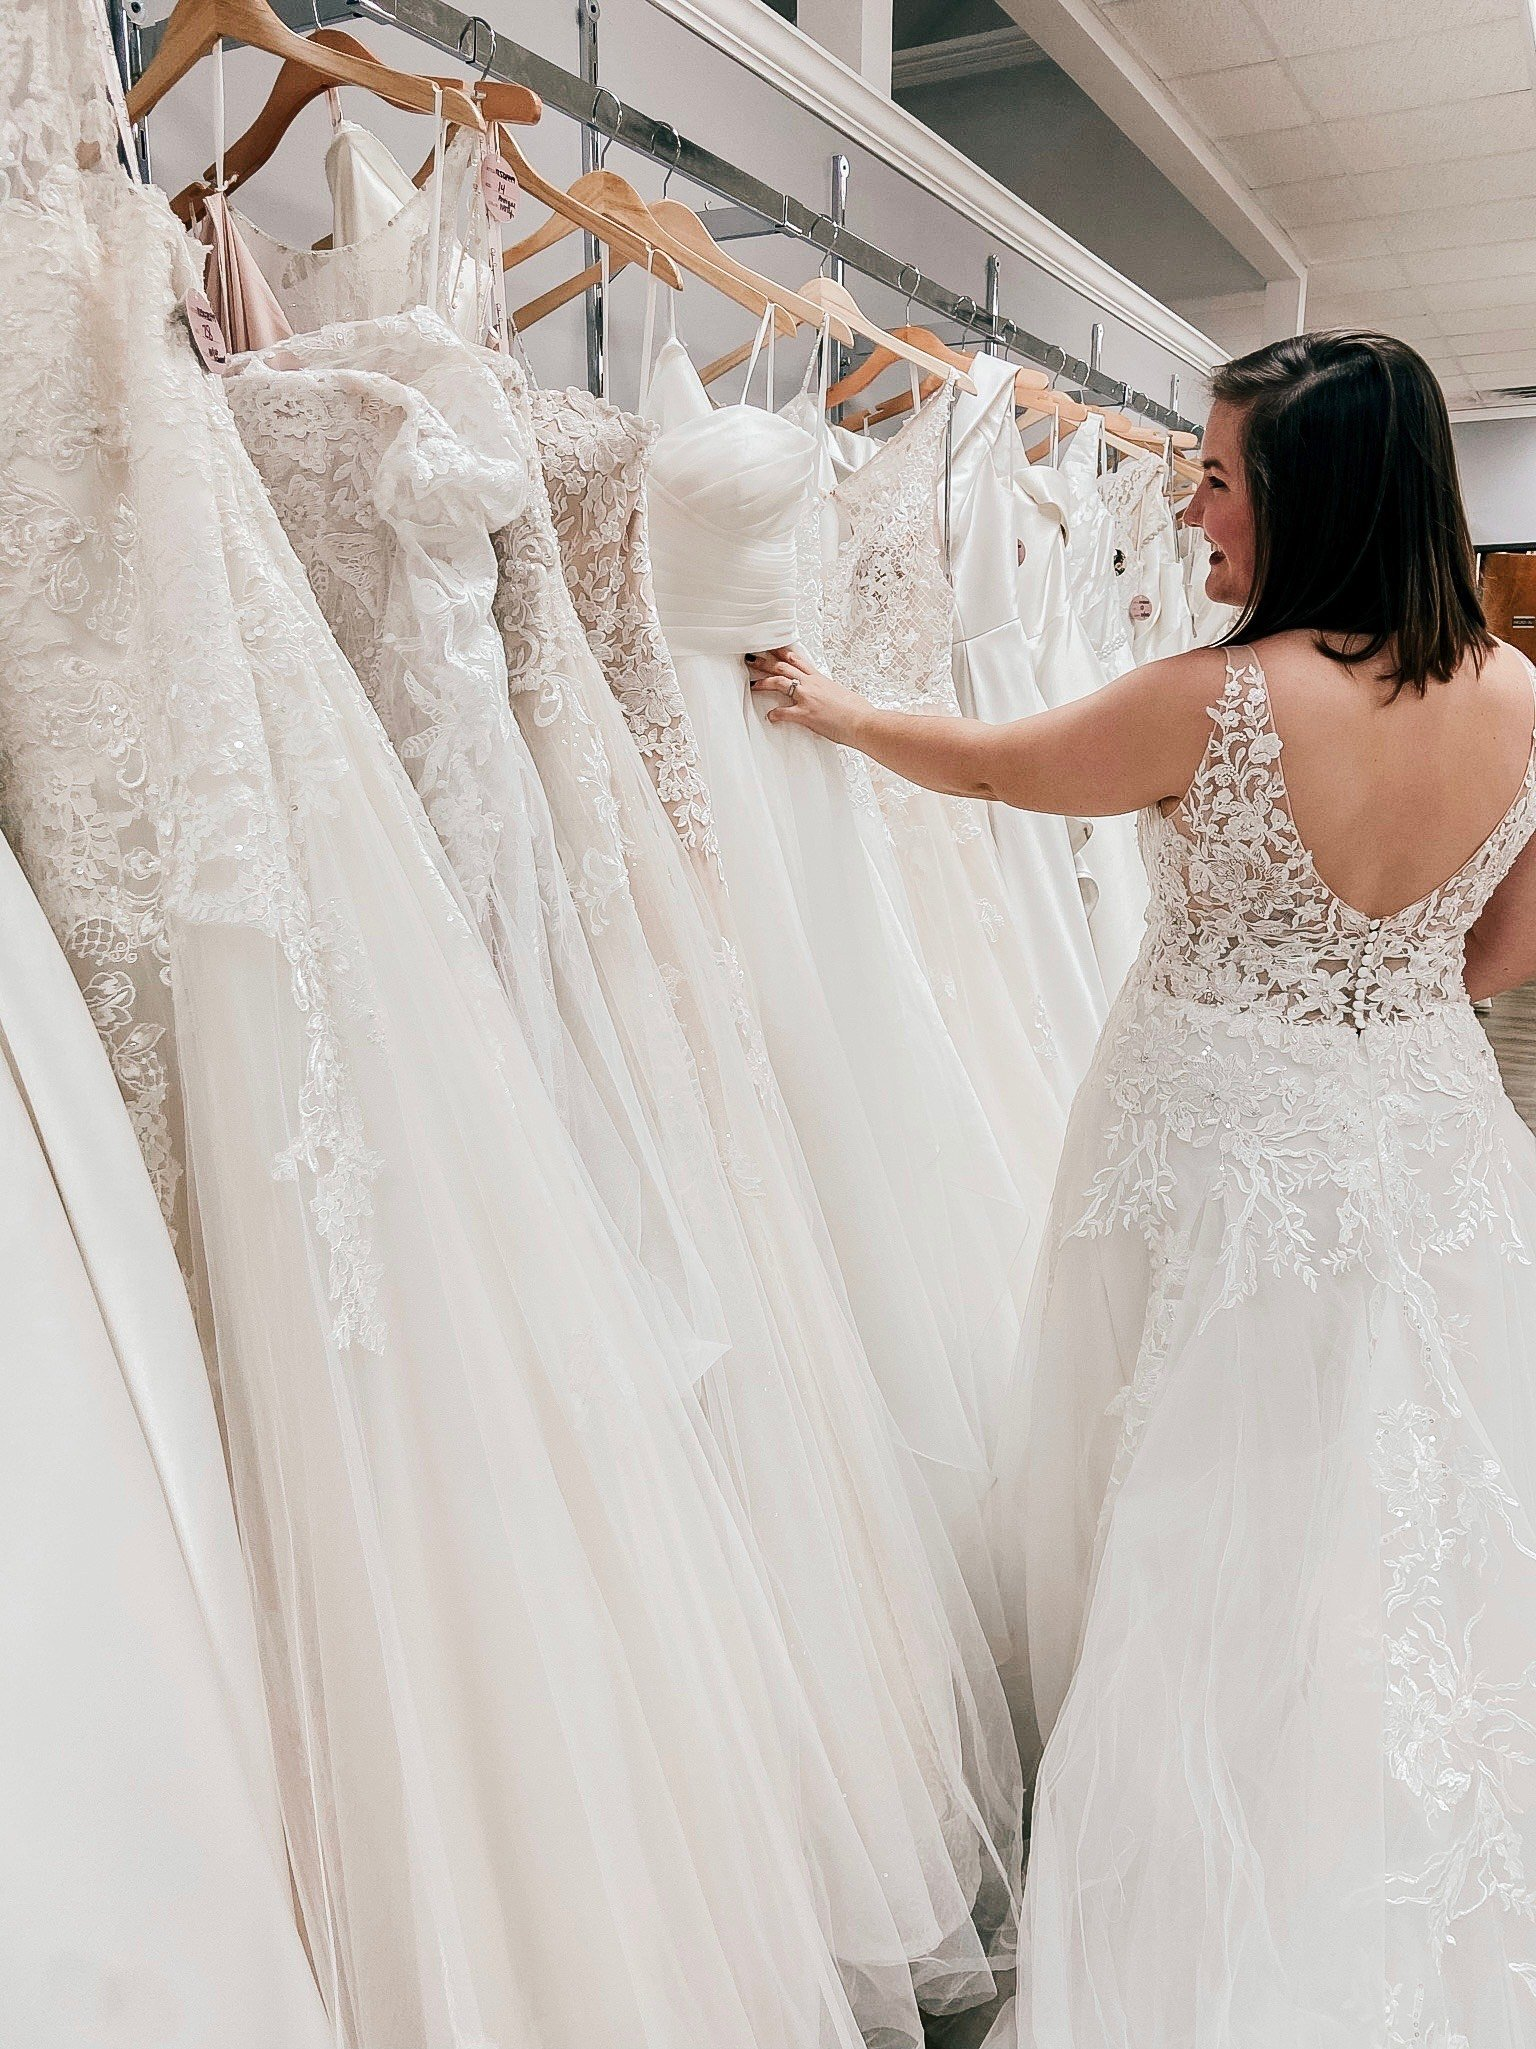 girl looking through dresses at a sample sale